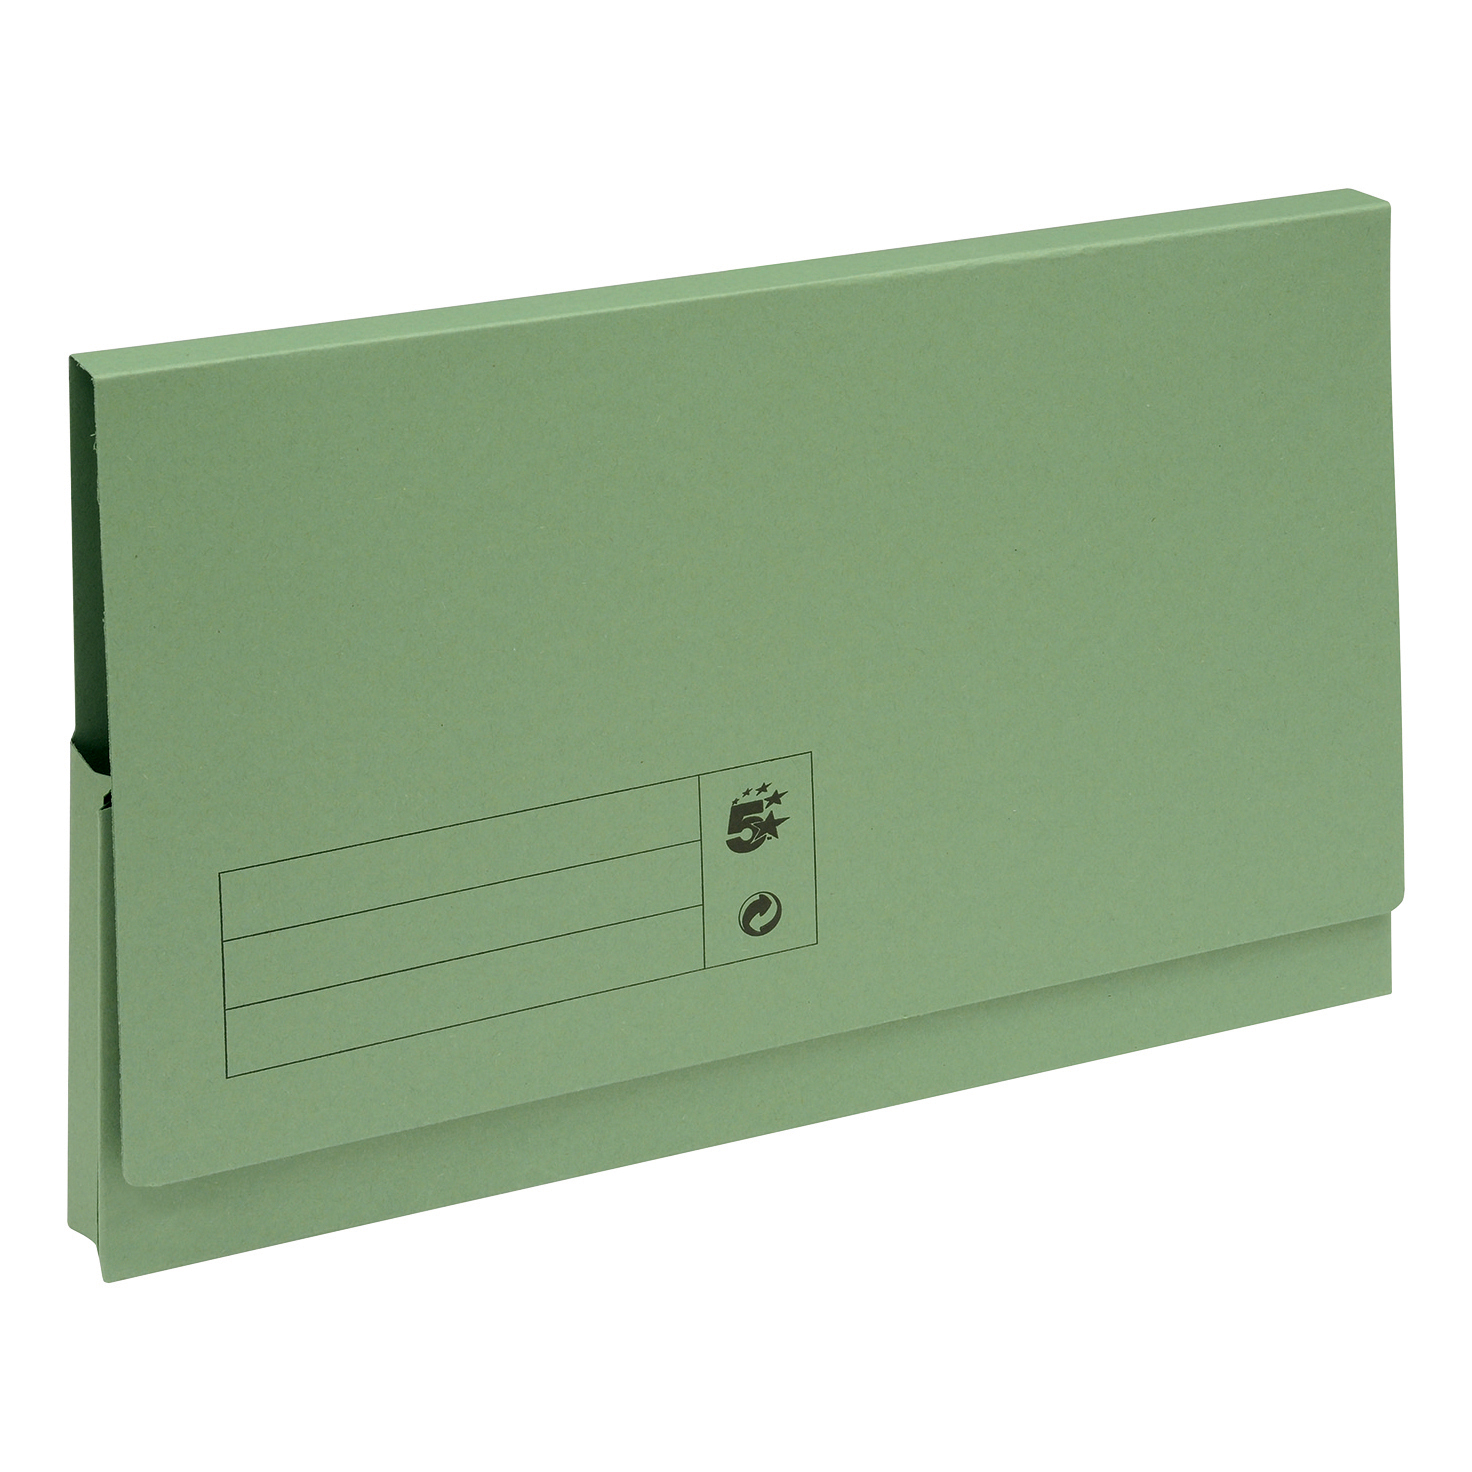 5 Star Office Document Wallet Full Flap 285gsm Recycled Capacity 32mm Foolscap Green [Pack 50]